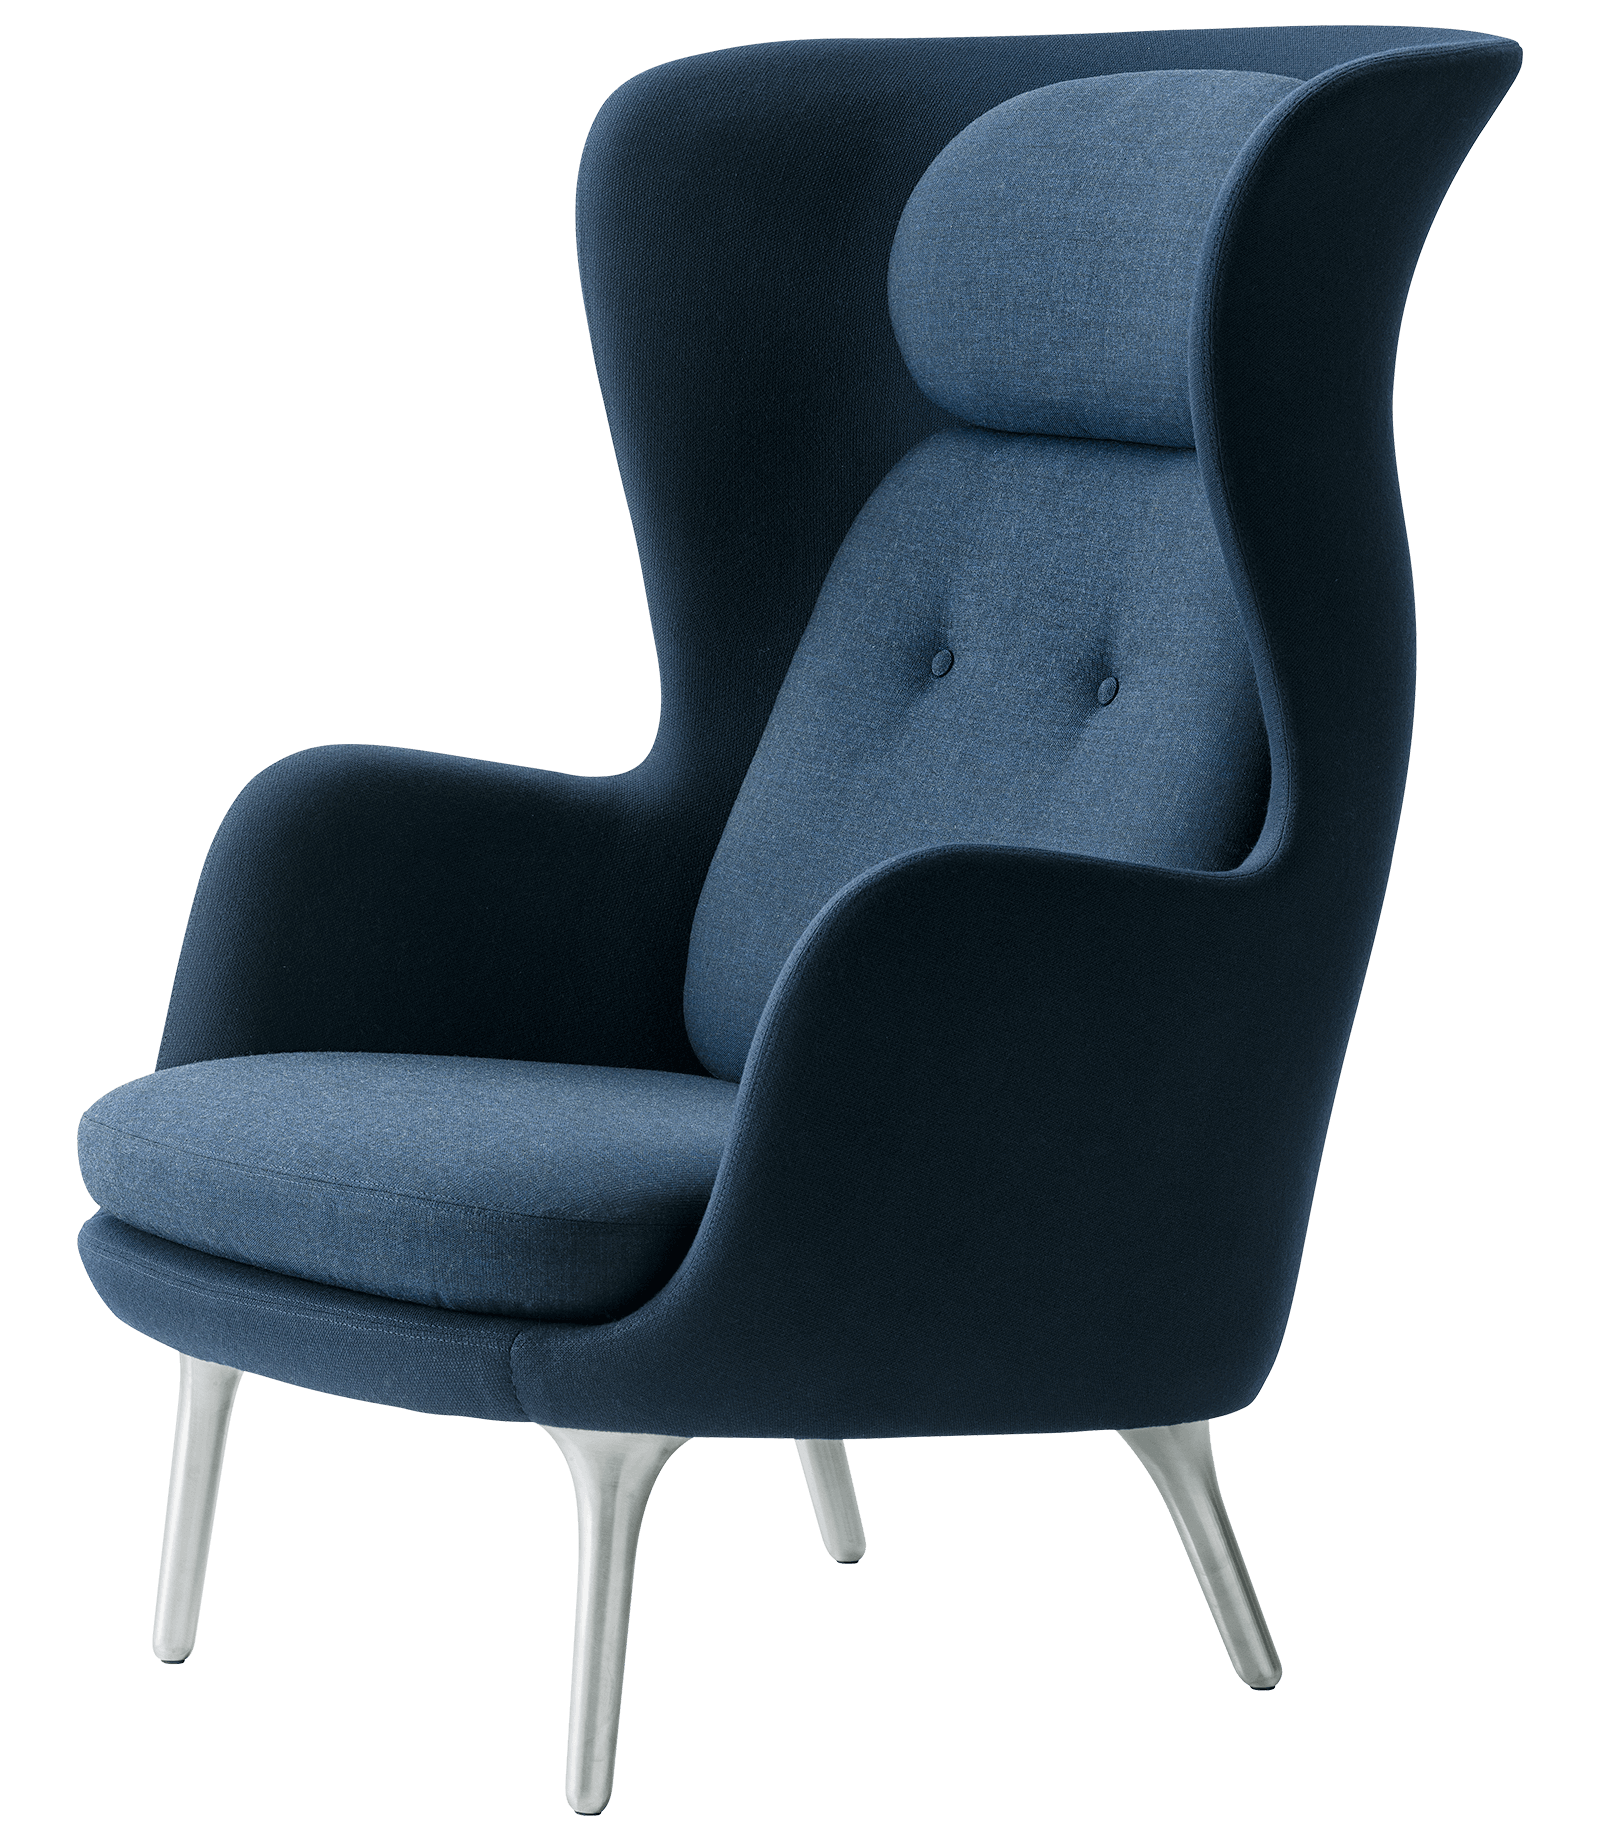 Armchair drawing lounge chair. Ro easy fabric work